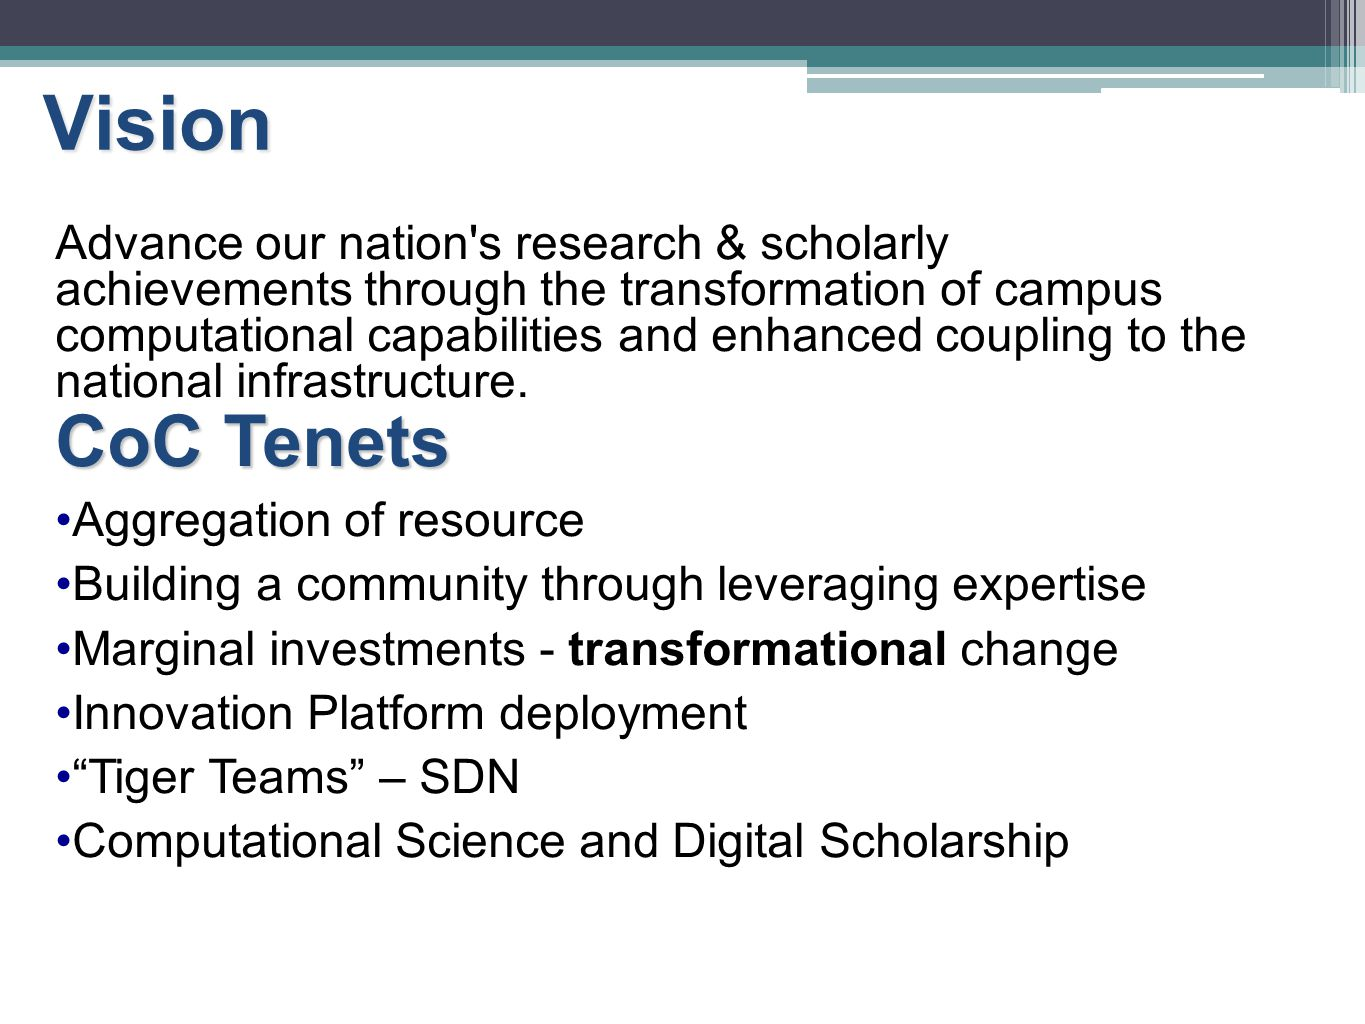 Vision Advance our nation's research & scholarly achievements through the transformation of campus computational capabilities and enhanced coupling to